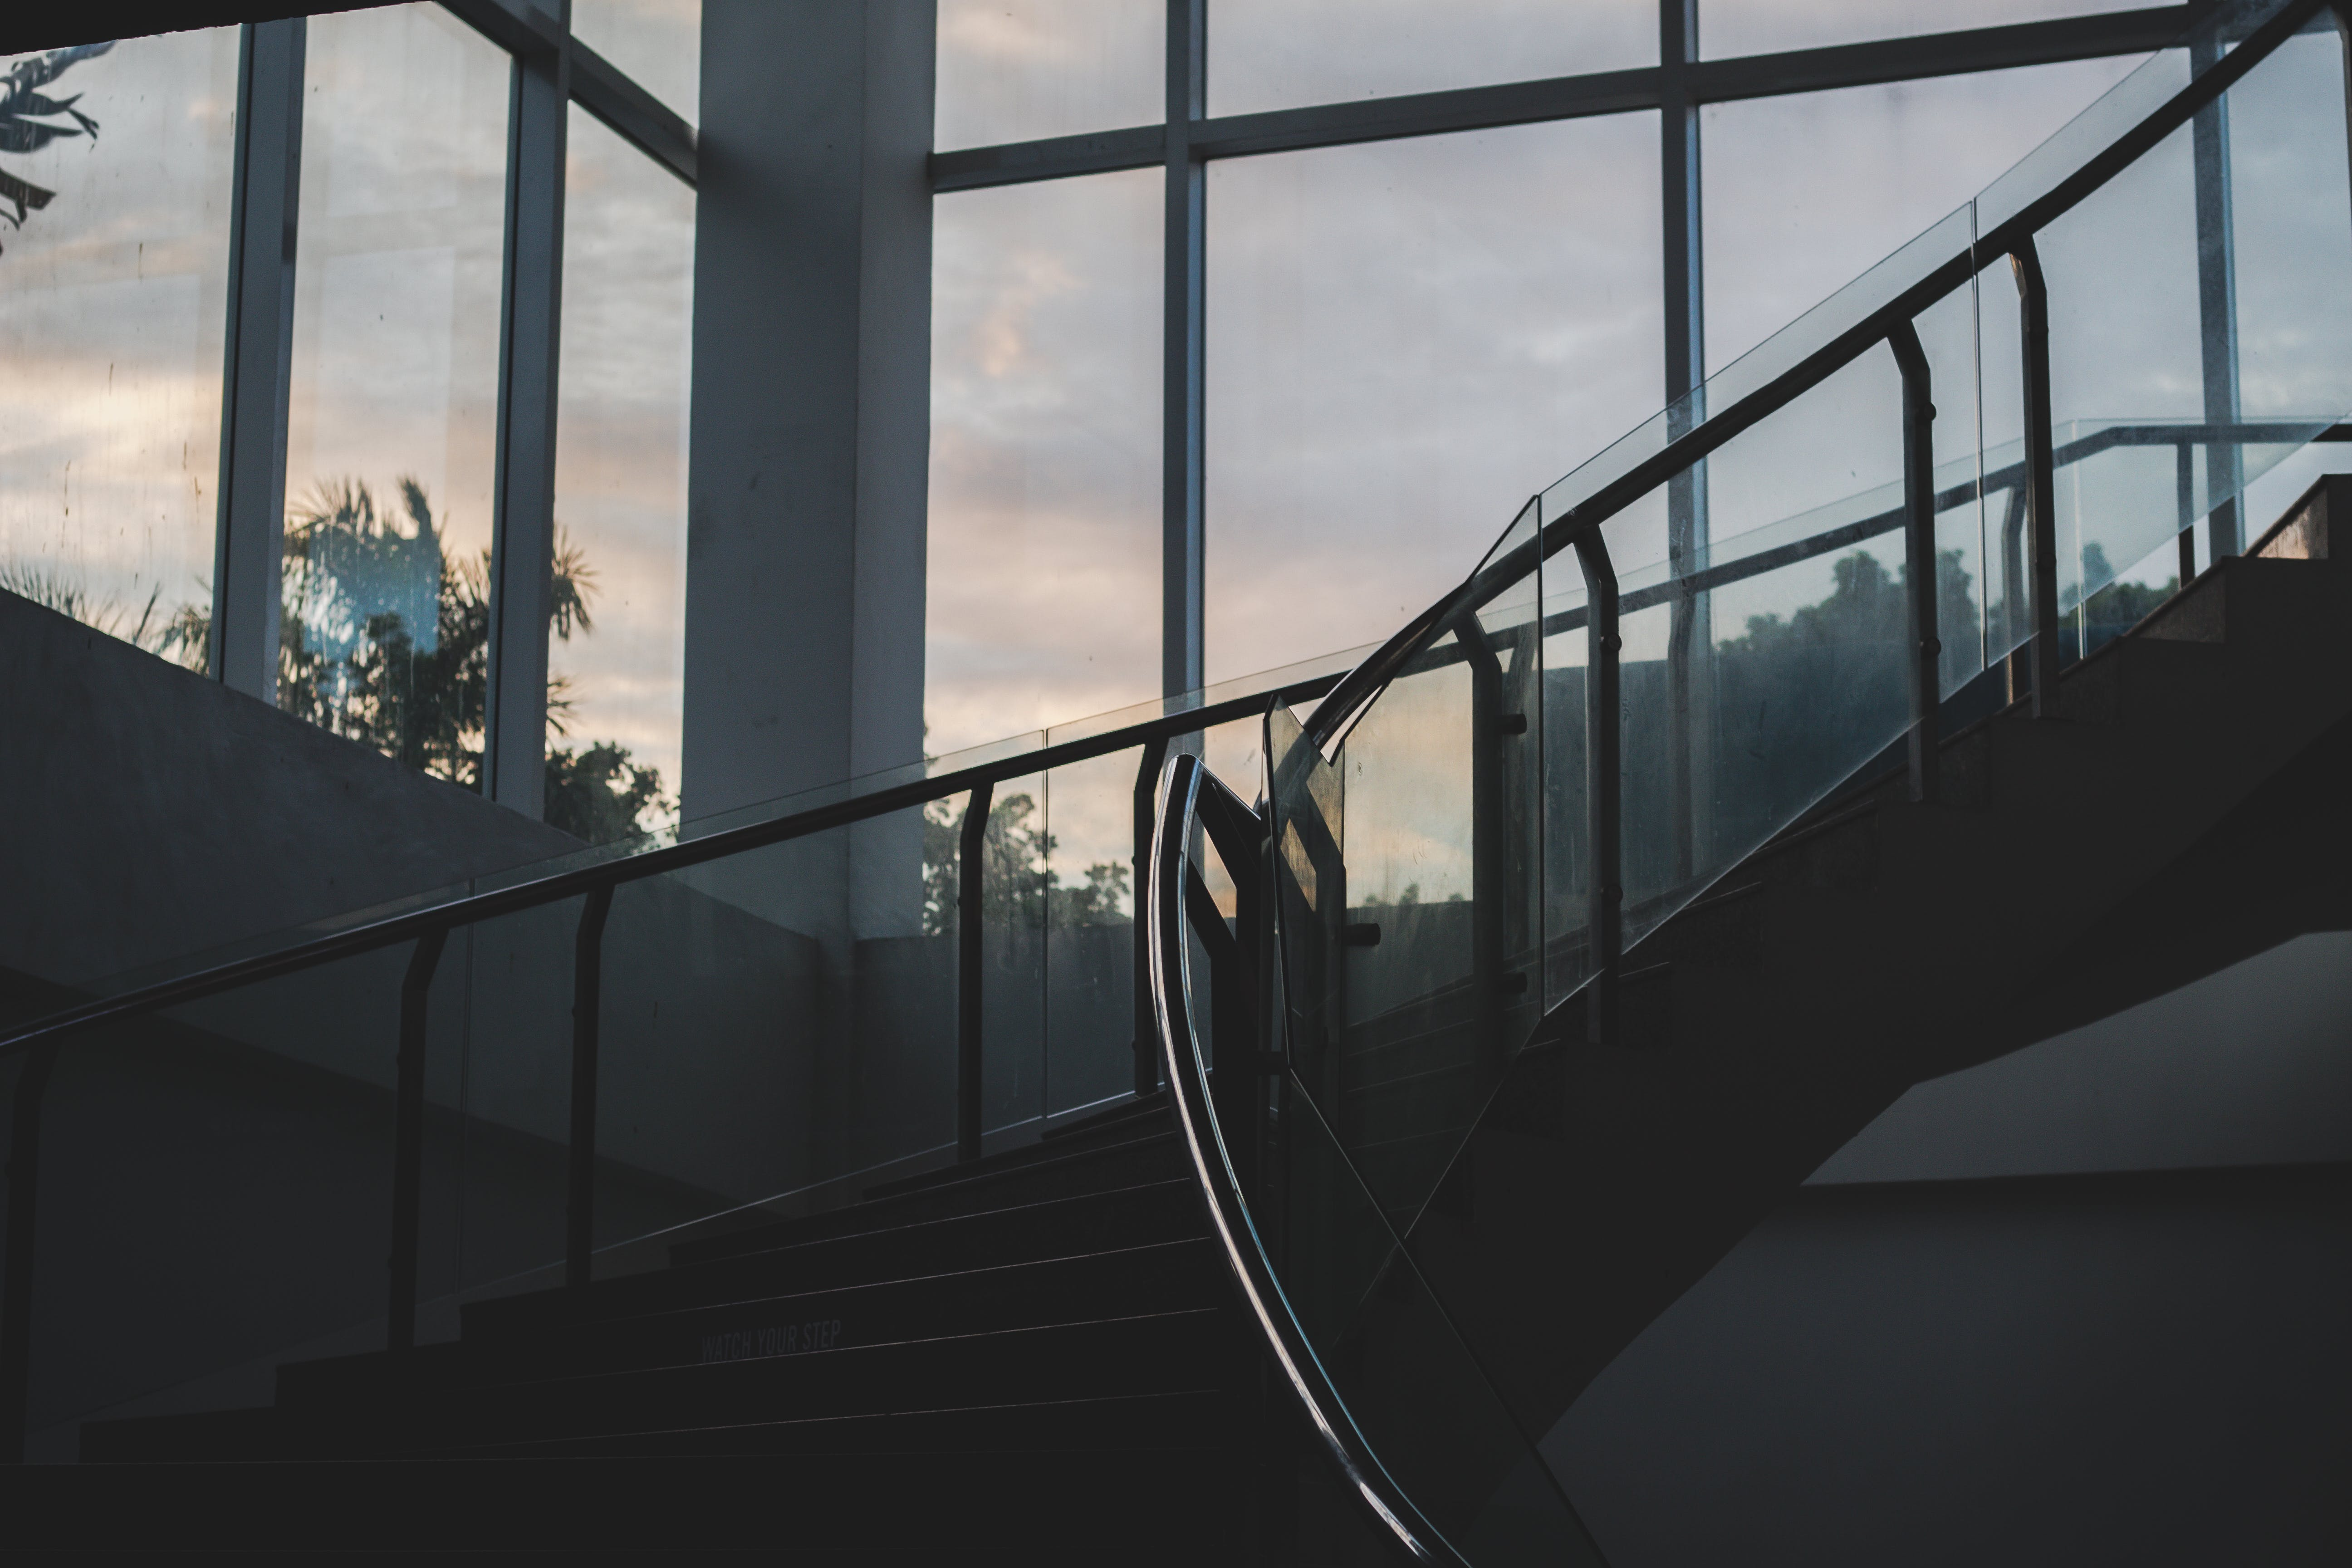 Photo of Stairs During Dawn